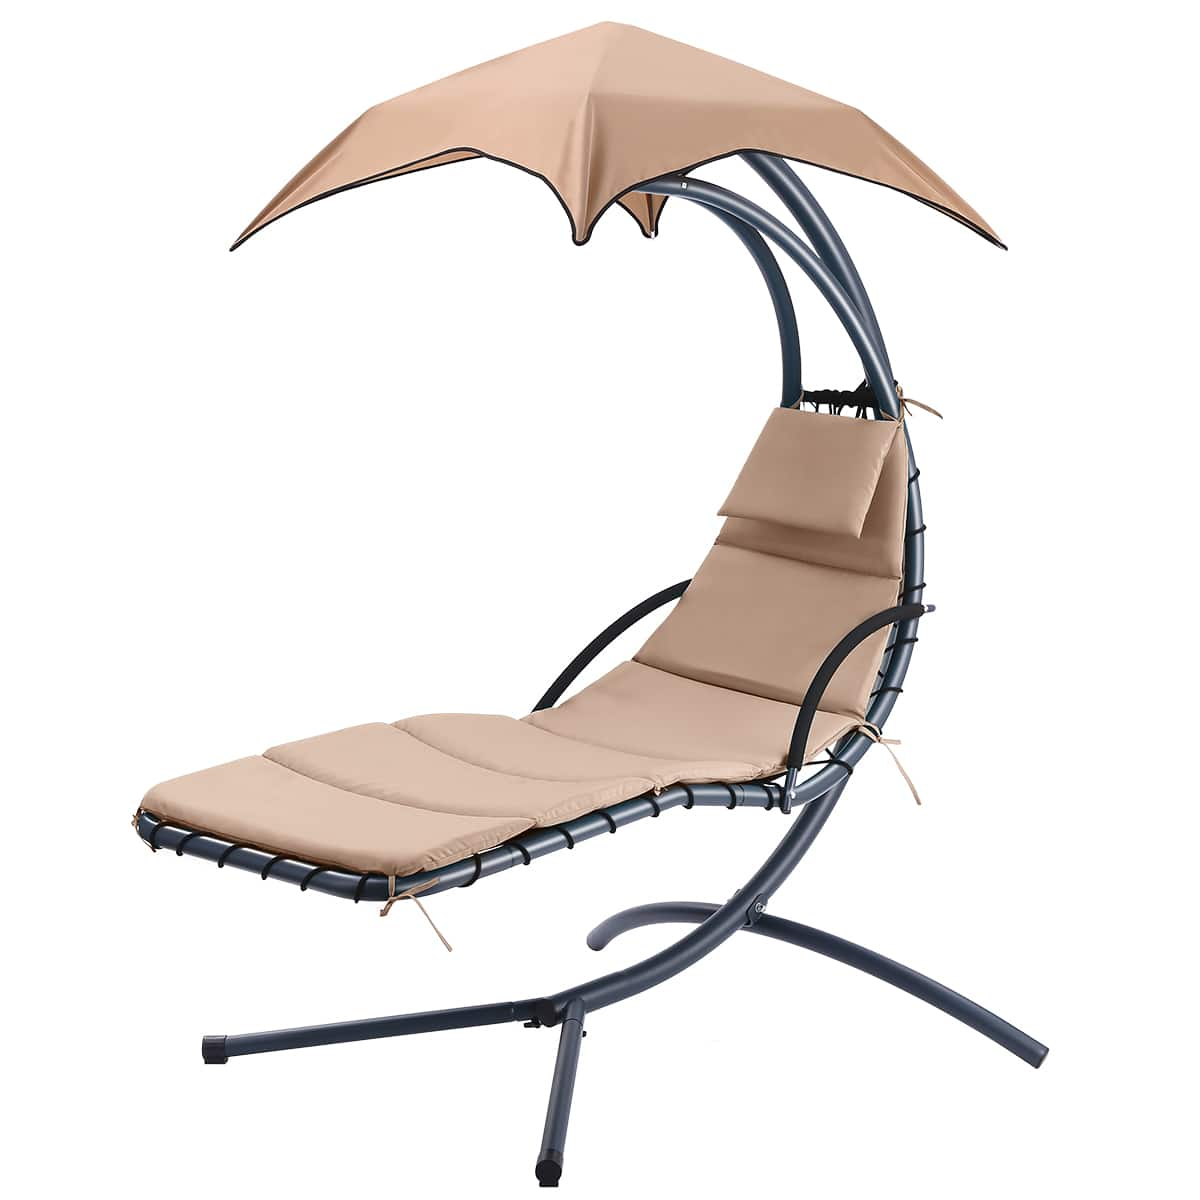 Rocking Sunshade Canopy Lounge Chair $115